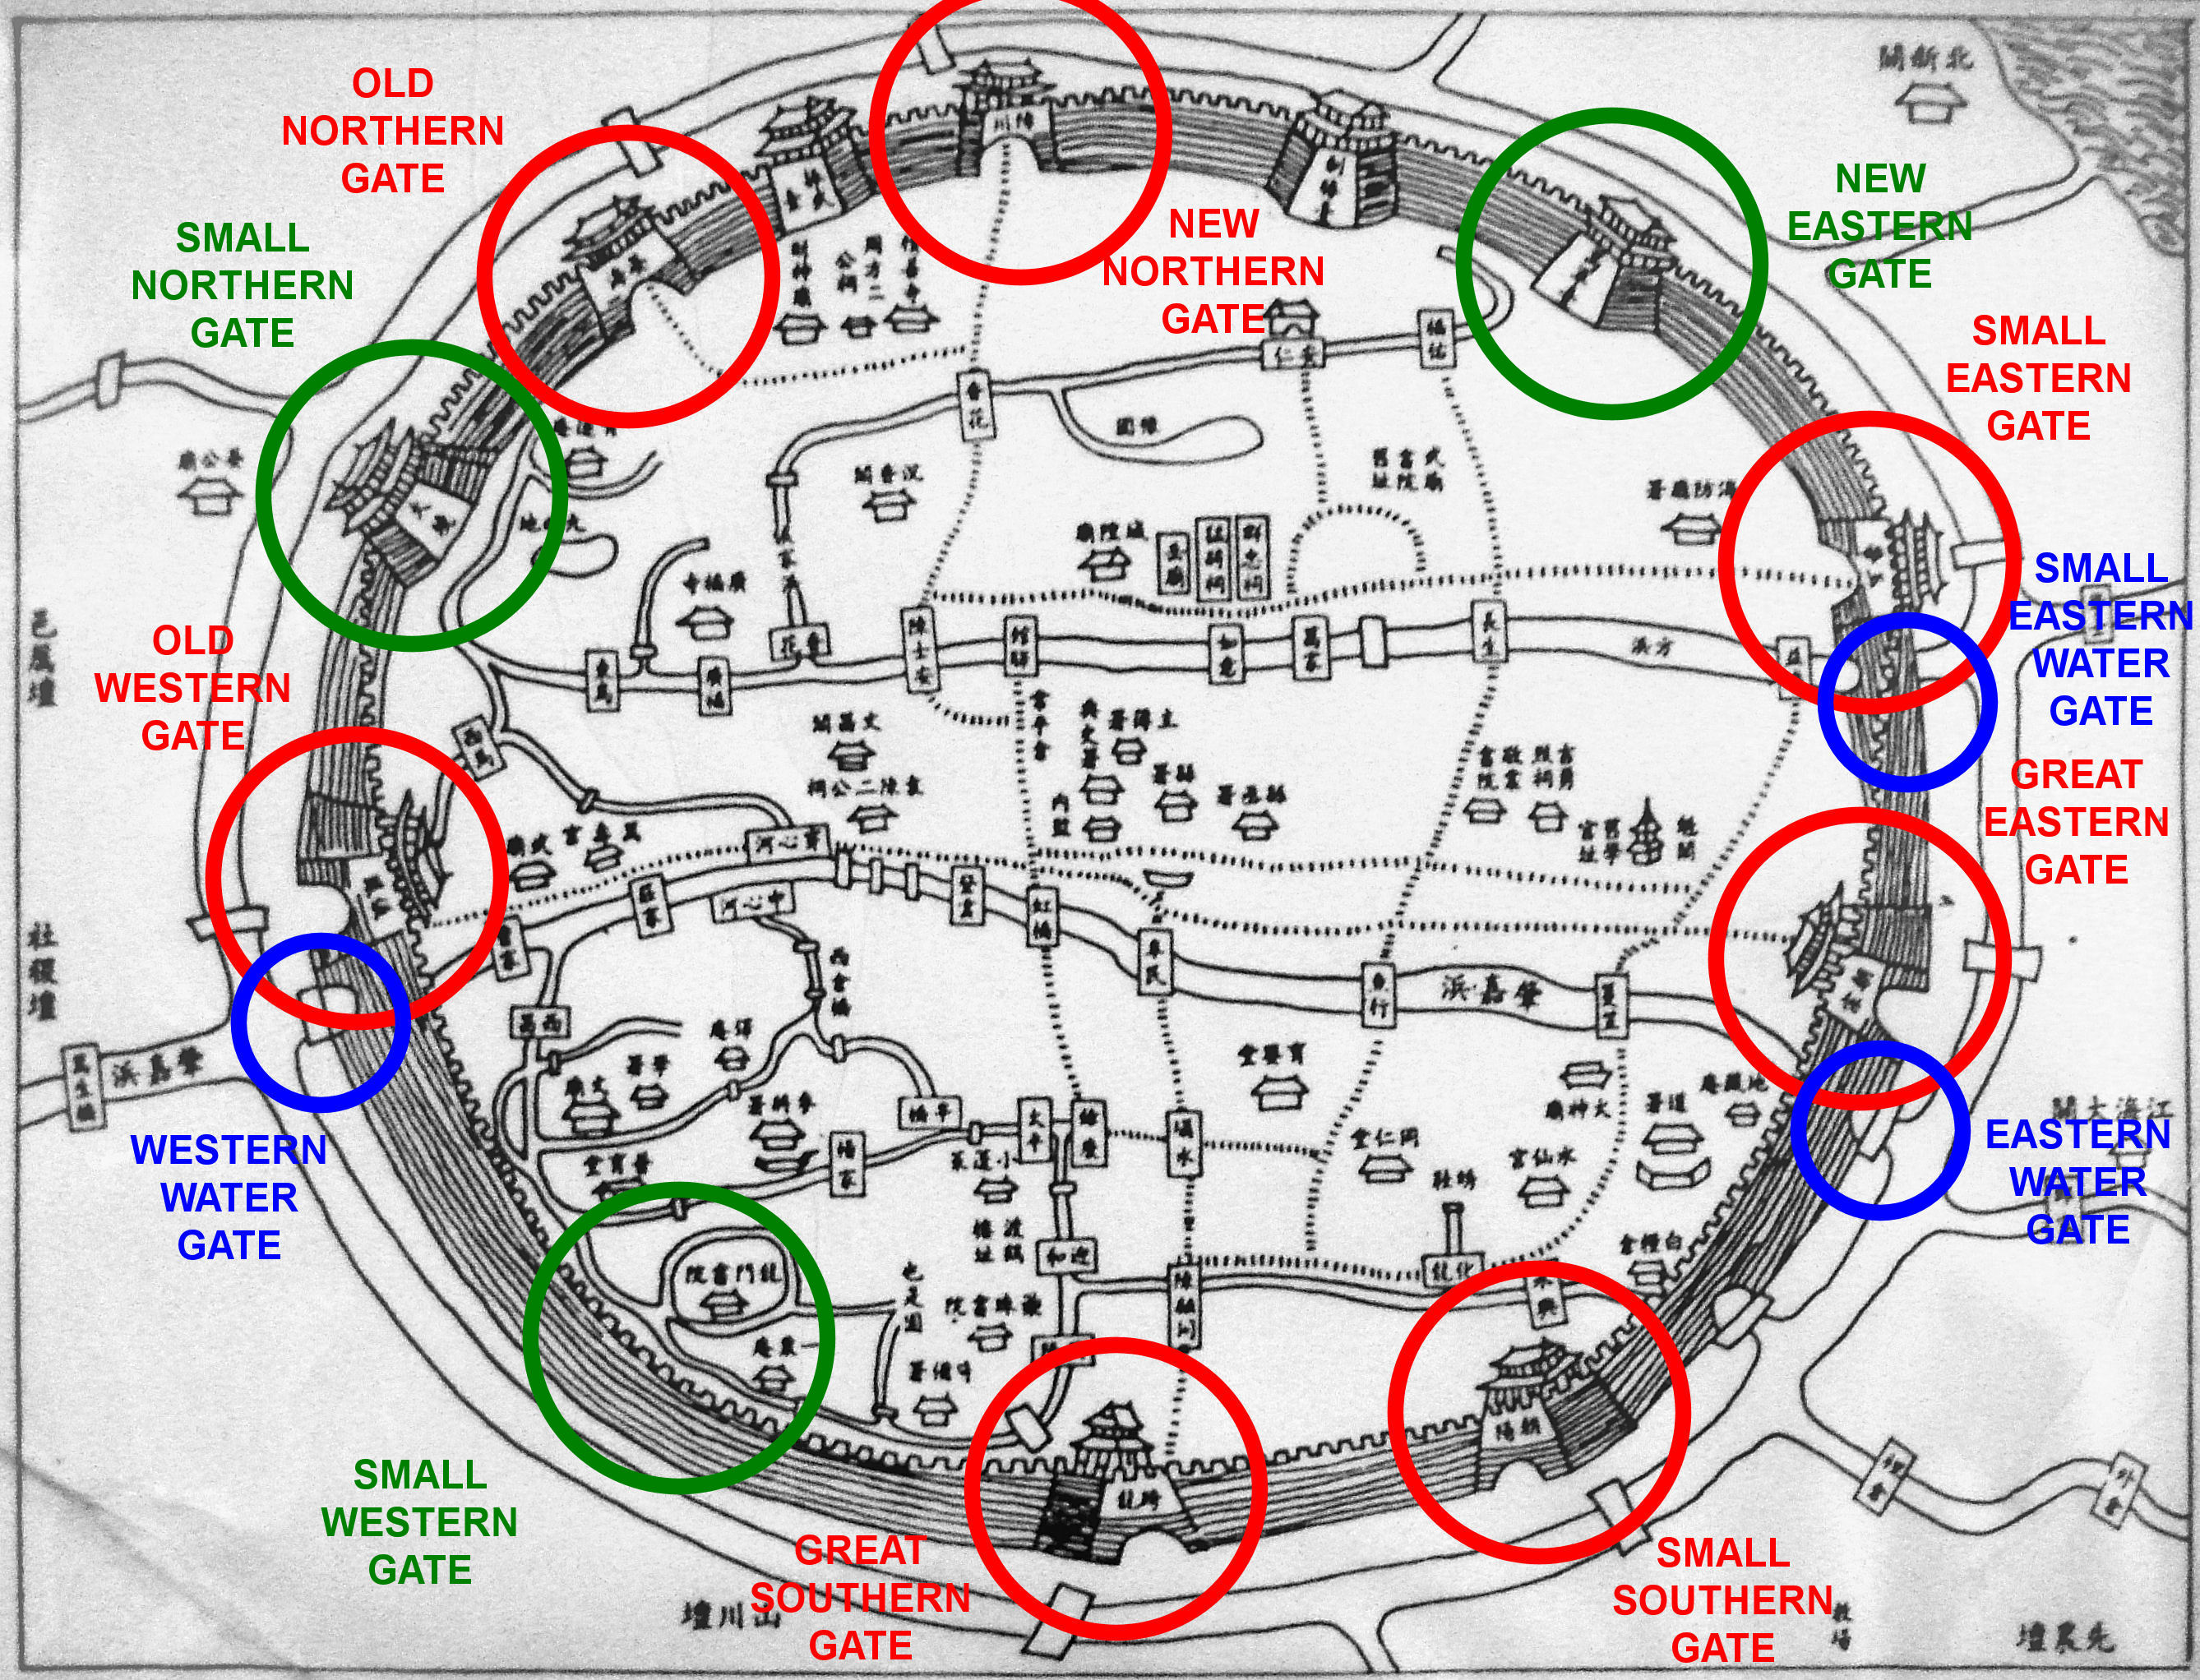 File Map of the Old City of Shanghai with first 6 gates and 3 water